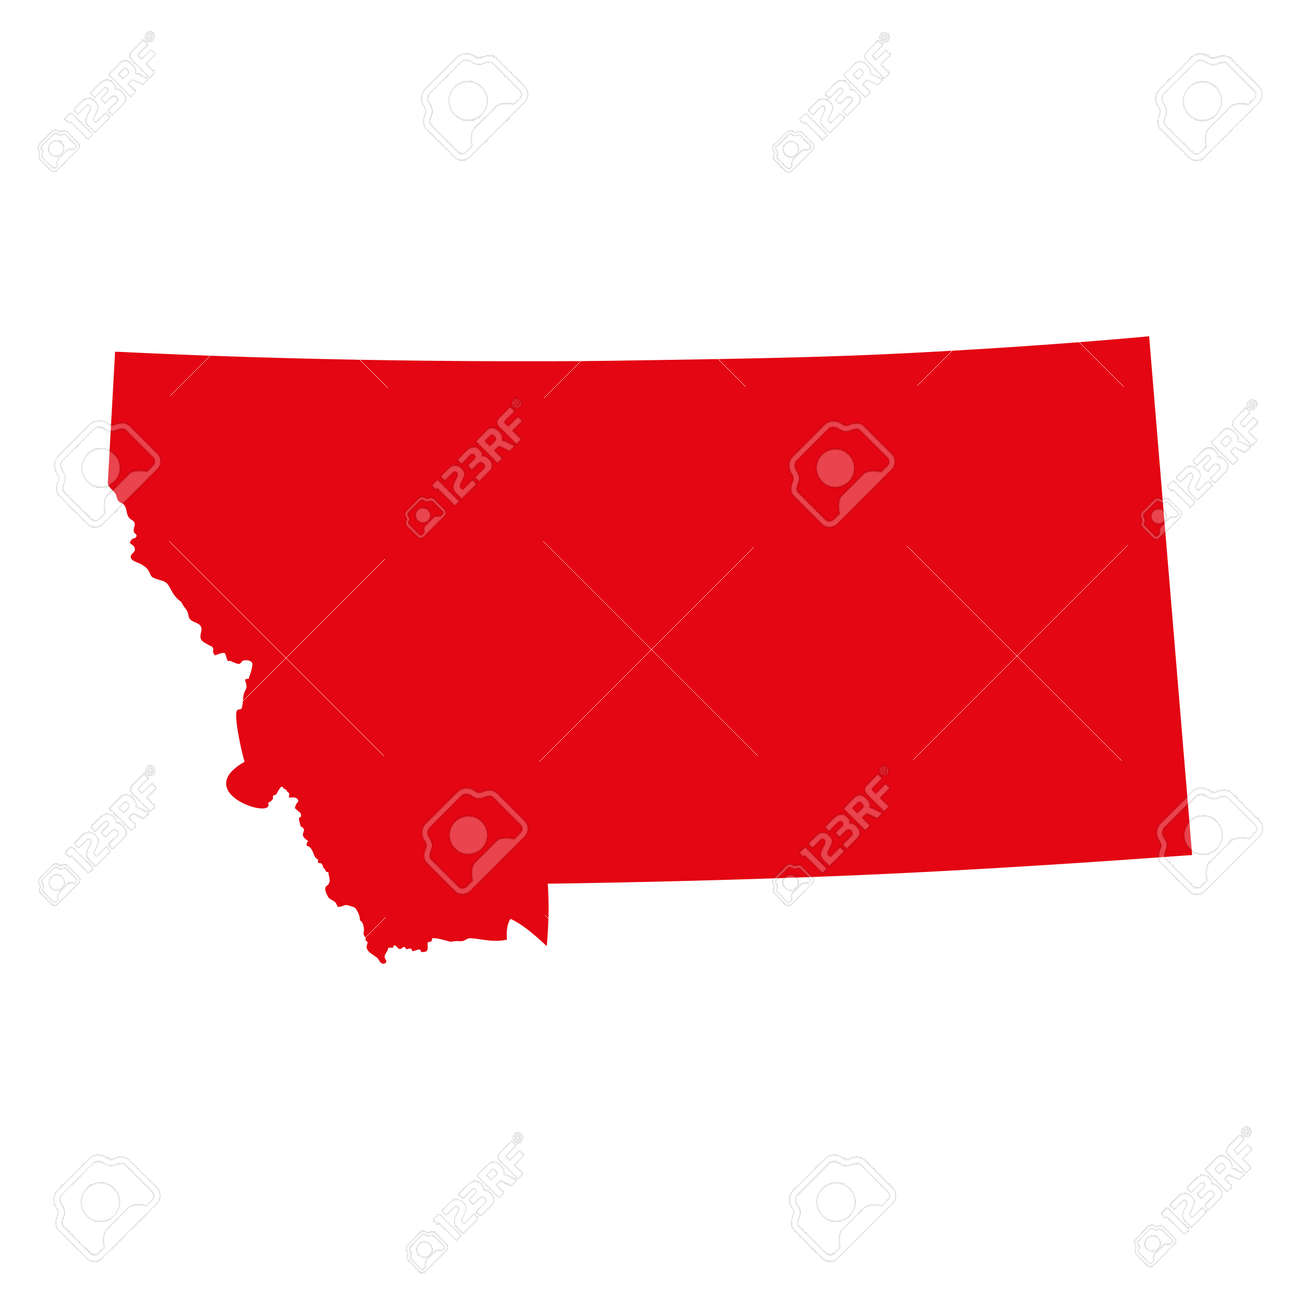 Map Of The US State Of Montana Royalty Free Cliparts Vectors